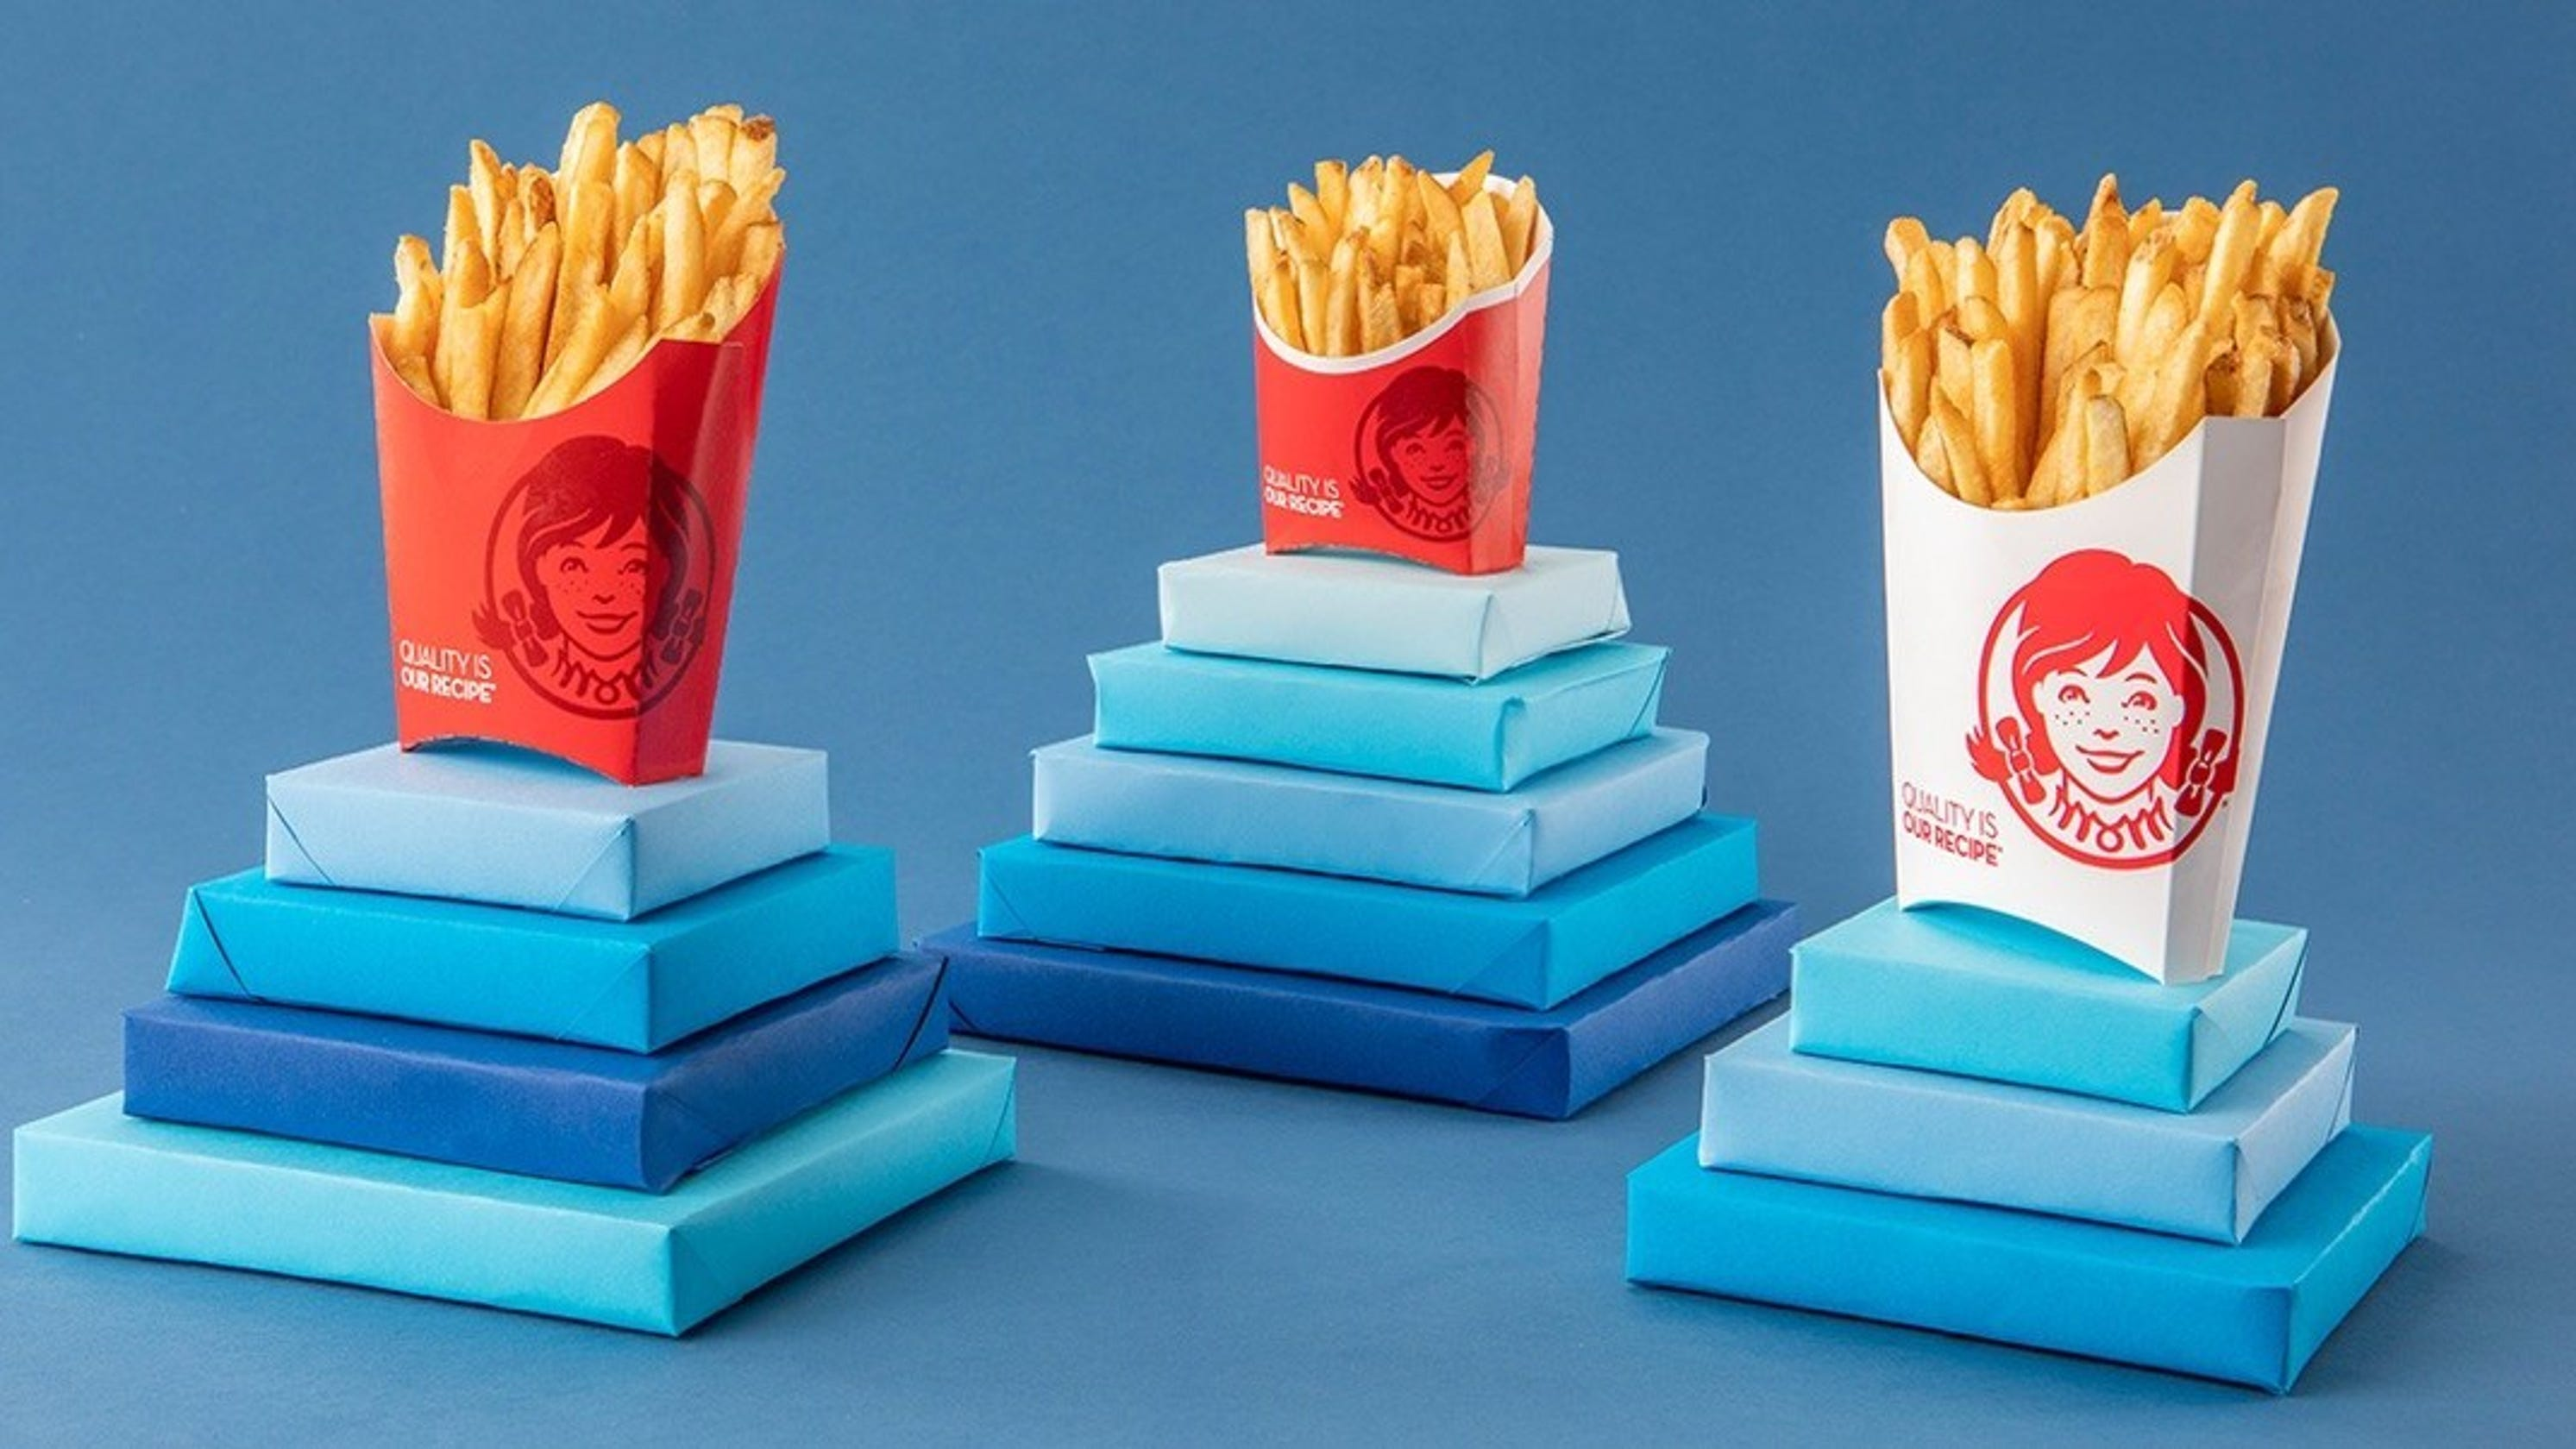 wendy s french fries deal pay just 1 for any size for limited time